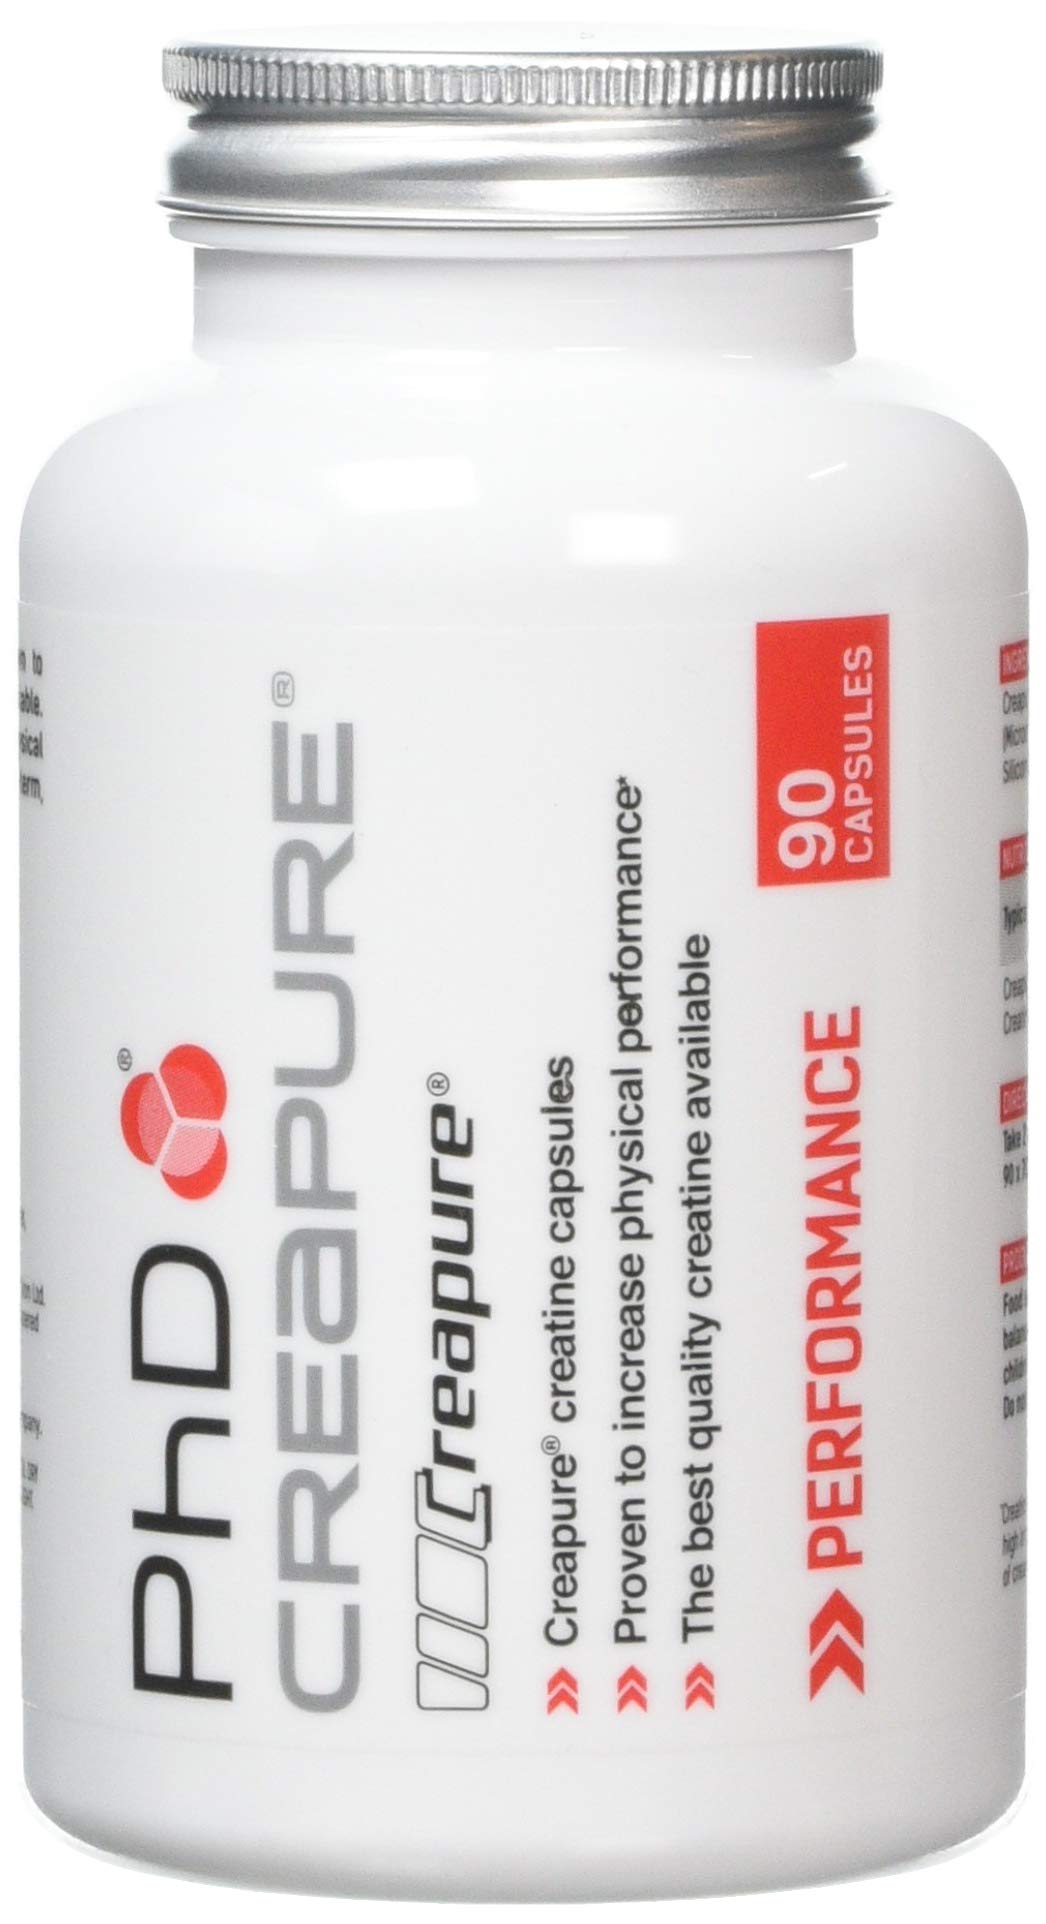 61hA57tdGeL - PhD Nutrition Creapure Creatine, 90 Capsules